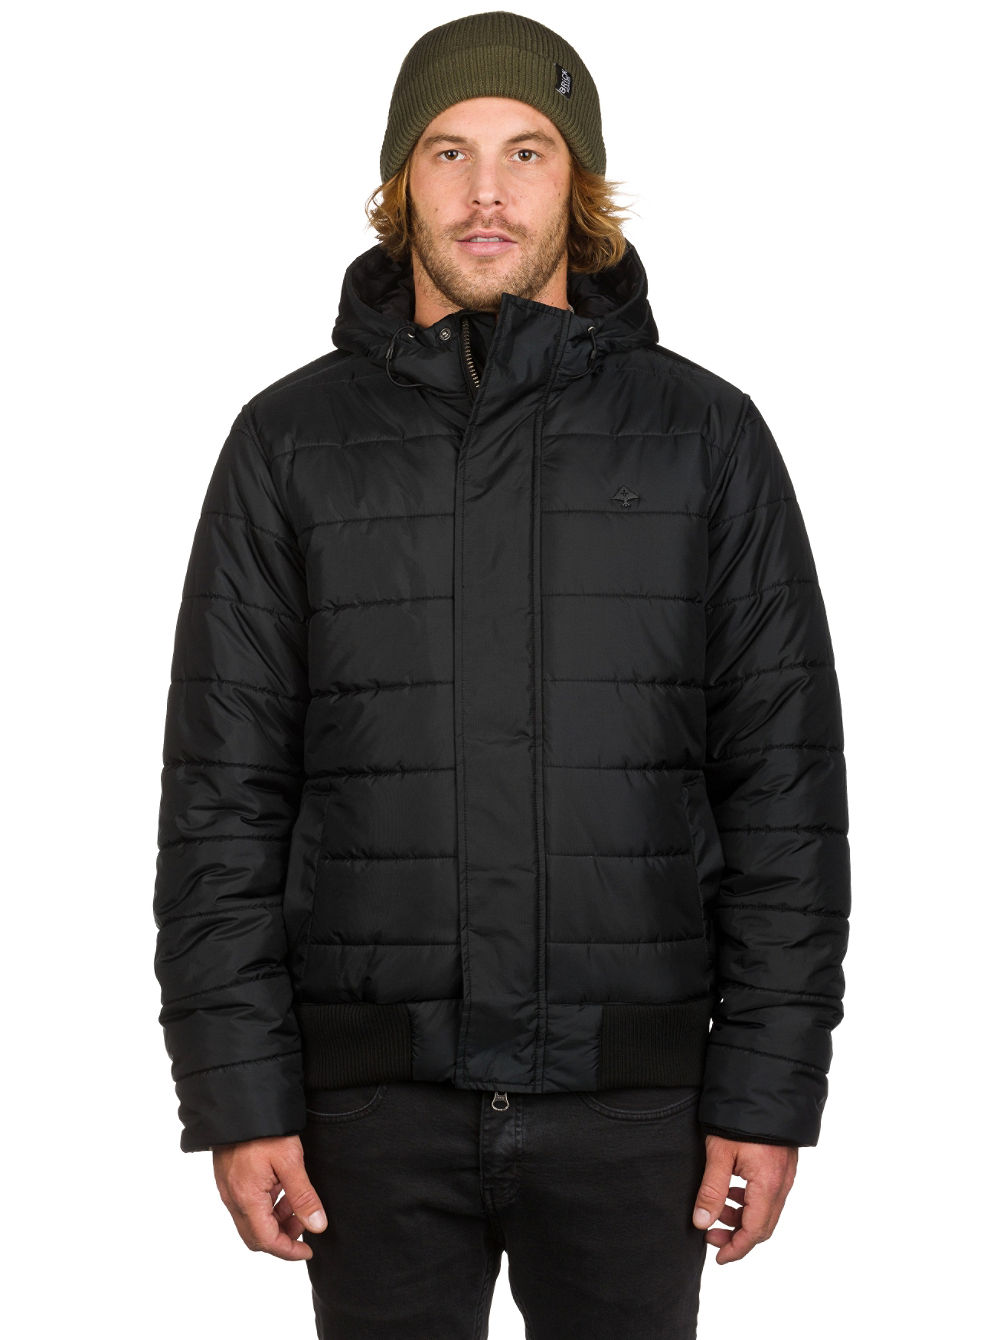 lrg-osborne-puffy-jacket